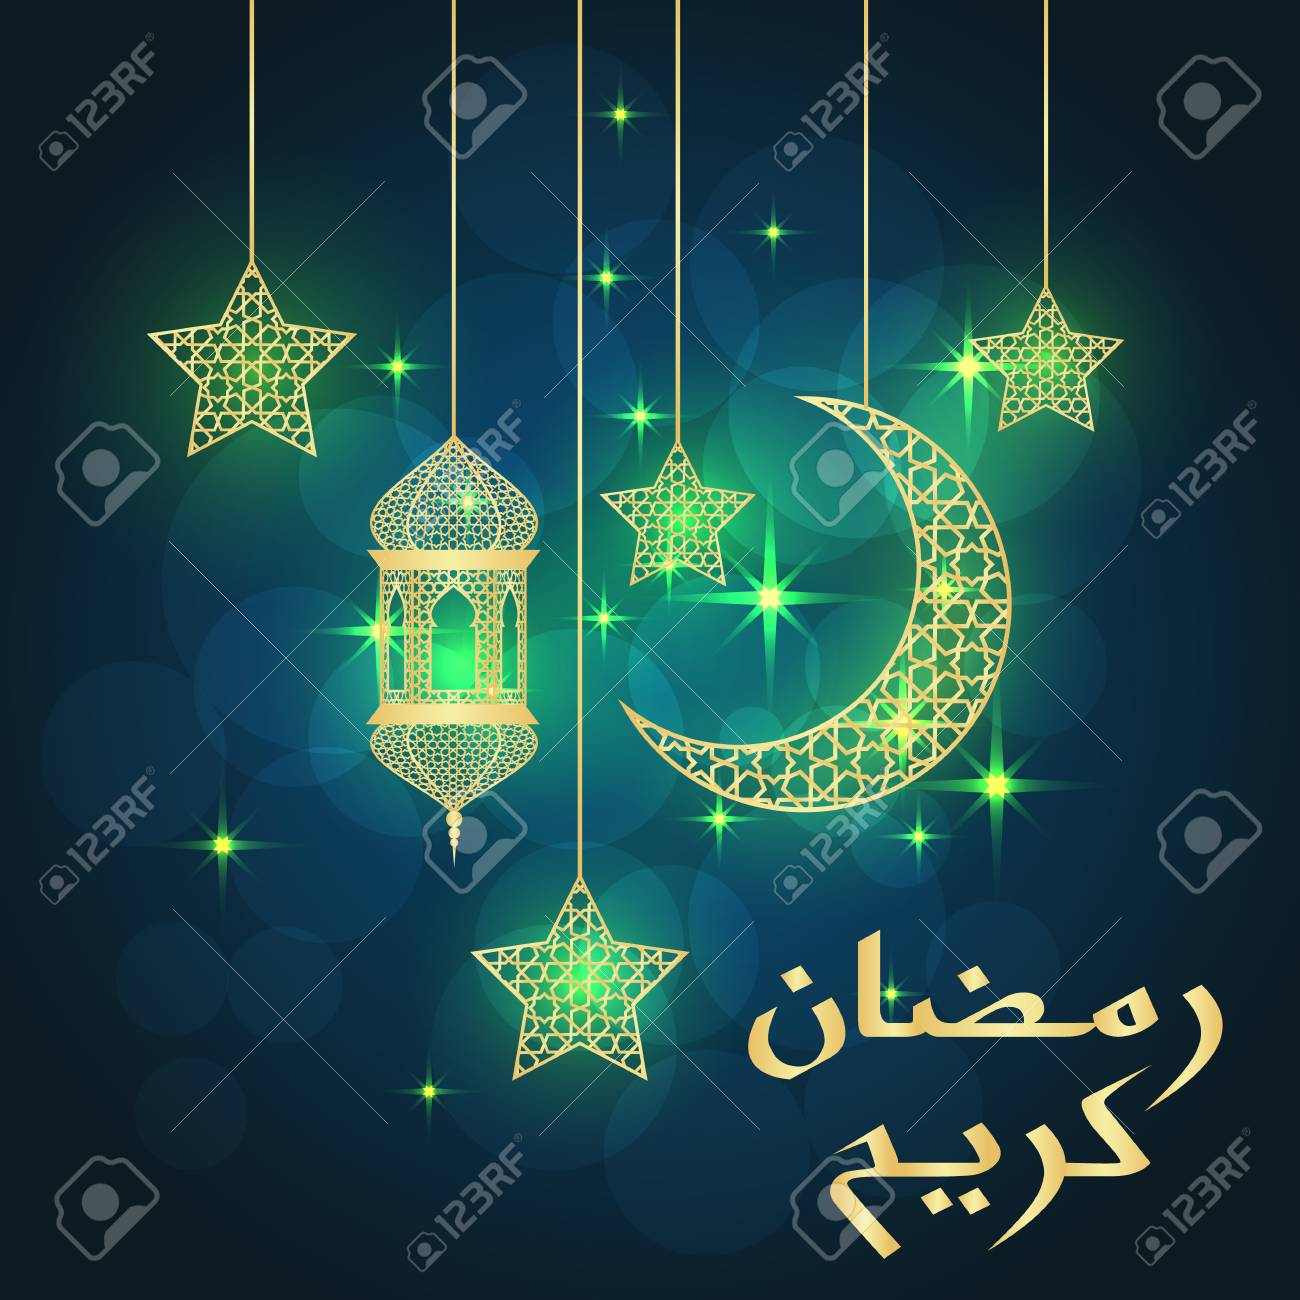 Ramadan greeting card on blue background vector illustration ramadan greeting card on blue background vector illustration ramadan kareem means ramadan is generous m4hsunfo